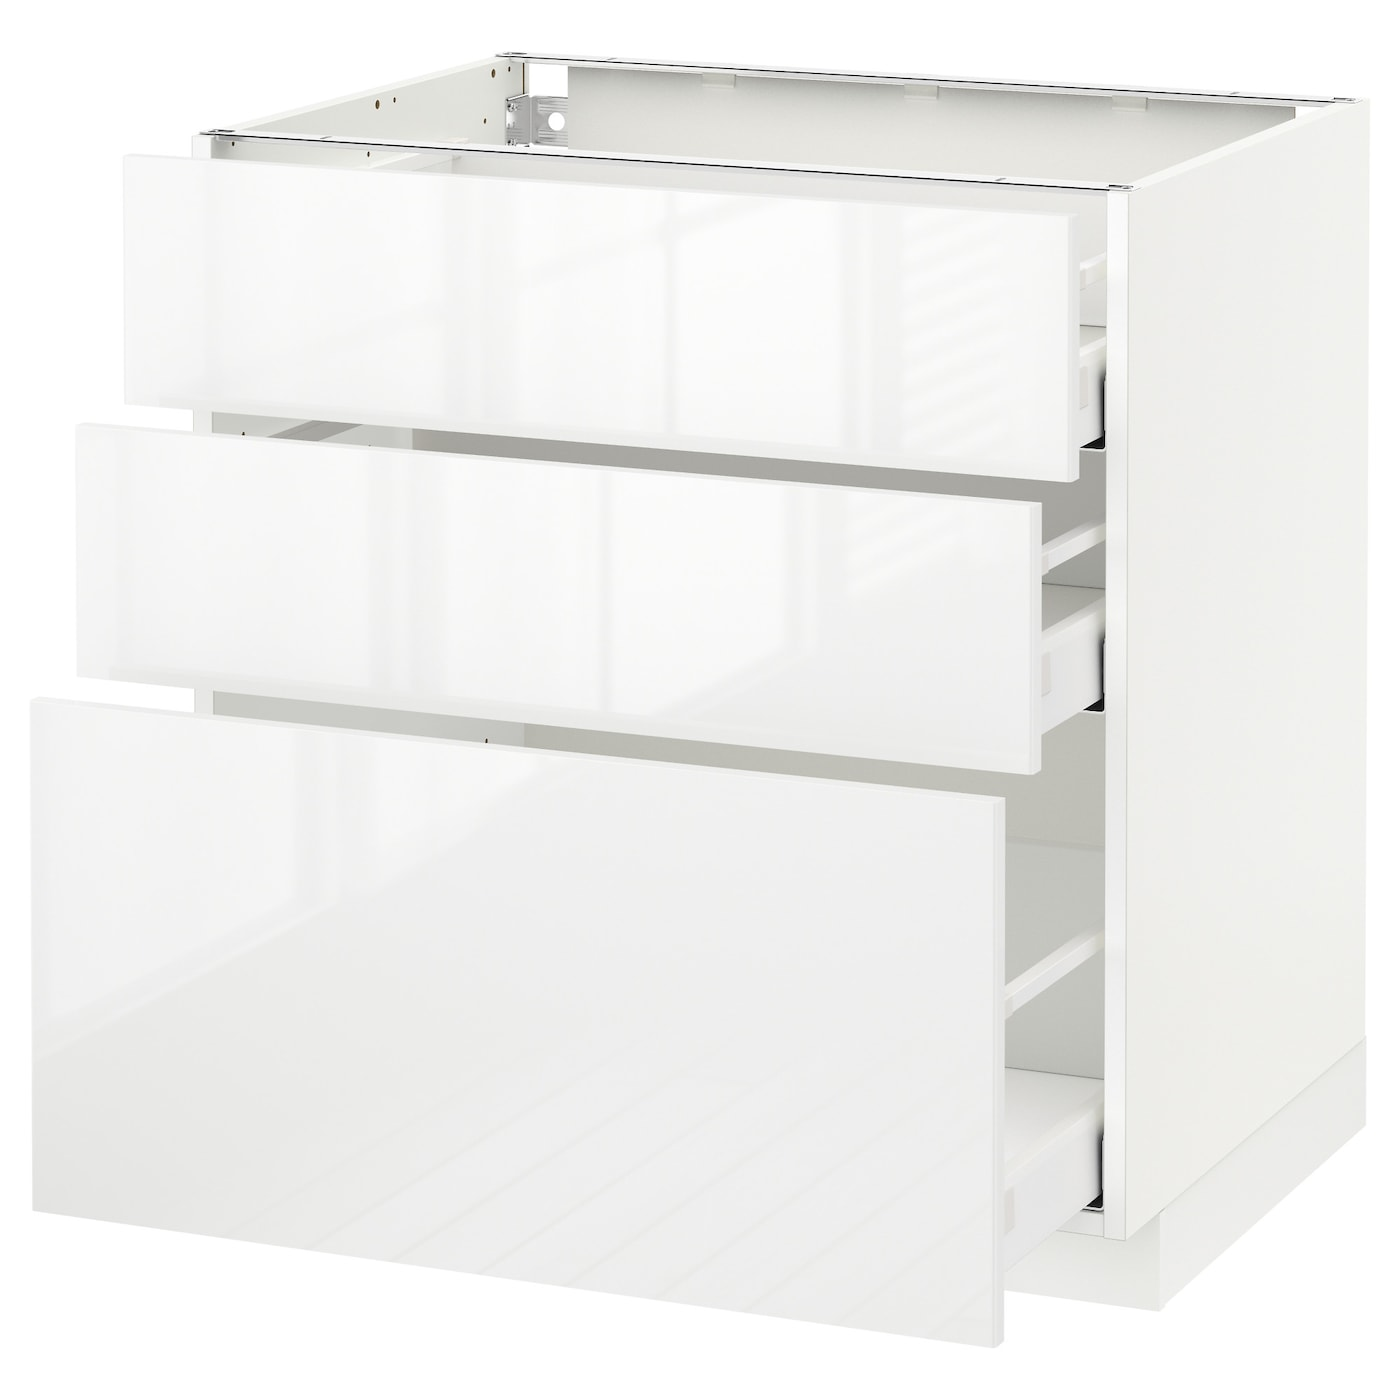 3 drawer base kitchen cabinets metod maximera base cabinet with 3 drawers white ringhult 10158